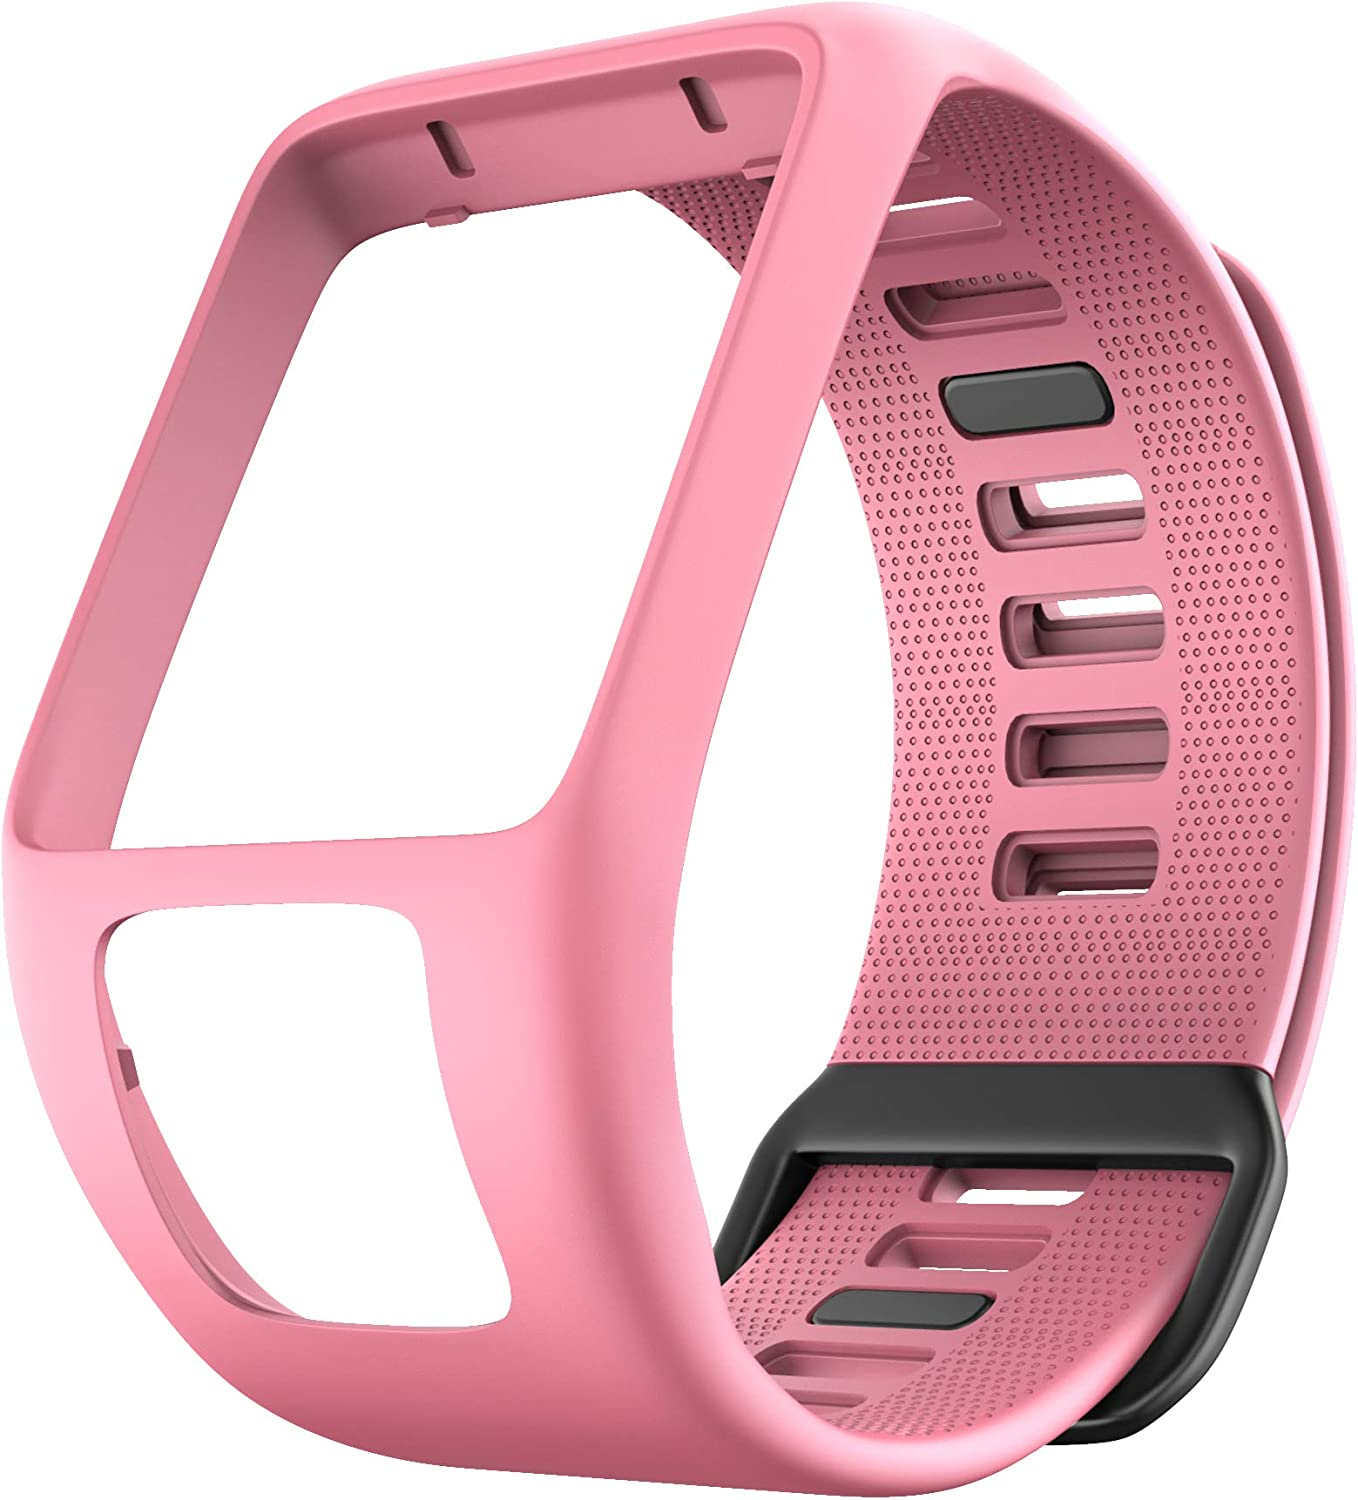 ANCOOL Compatible with Spark 3 Watch Bands Silicone Watch Straps Replacement for Runner 2 3,Spark 3, Golfer 2,Adventurer Smartwatches (Pink)